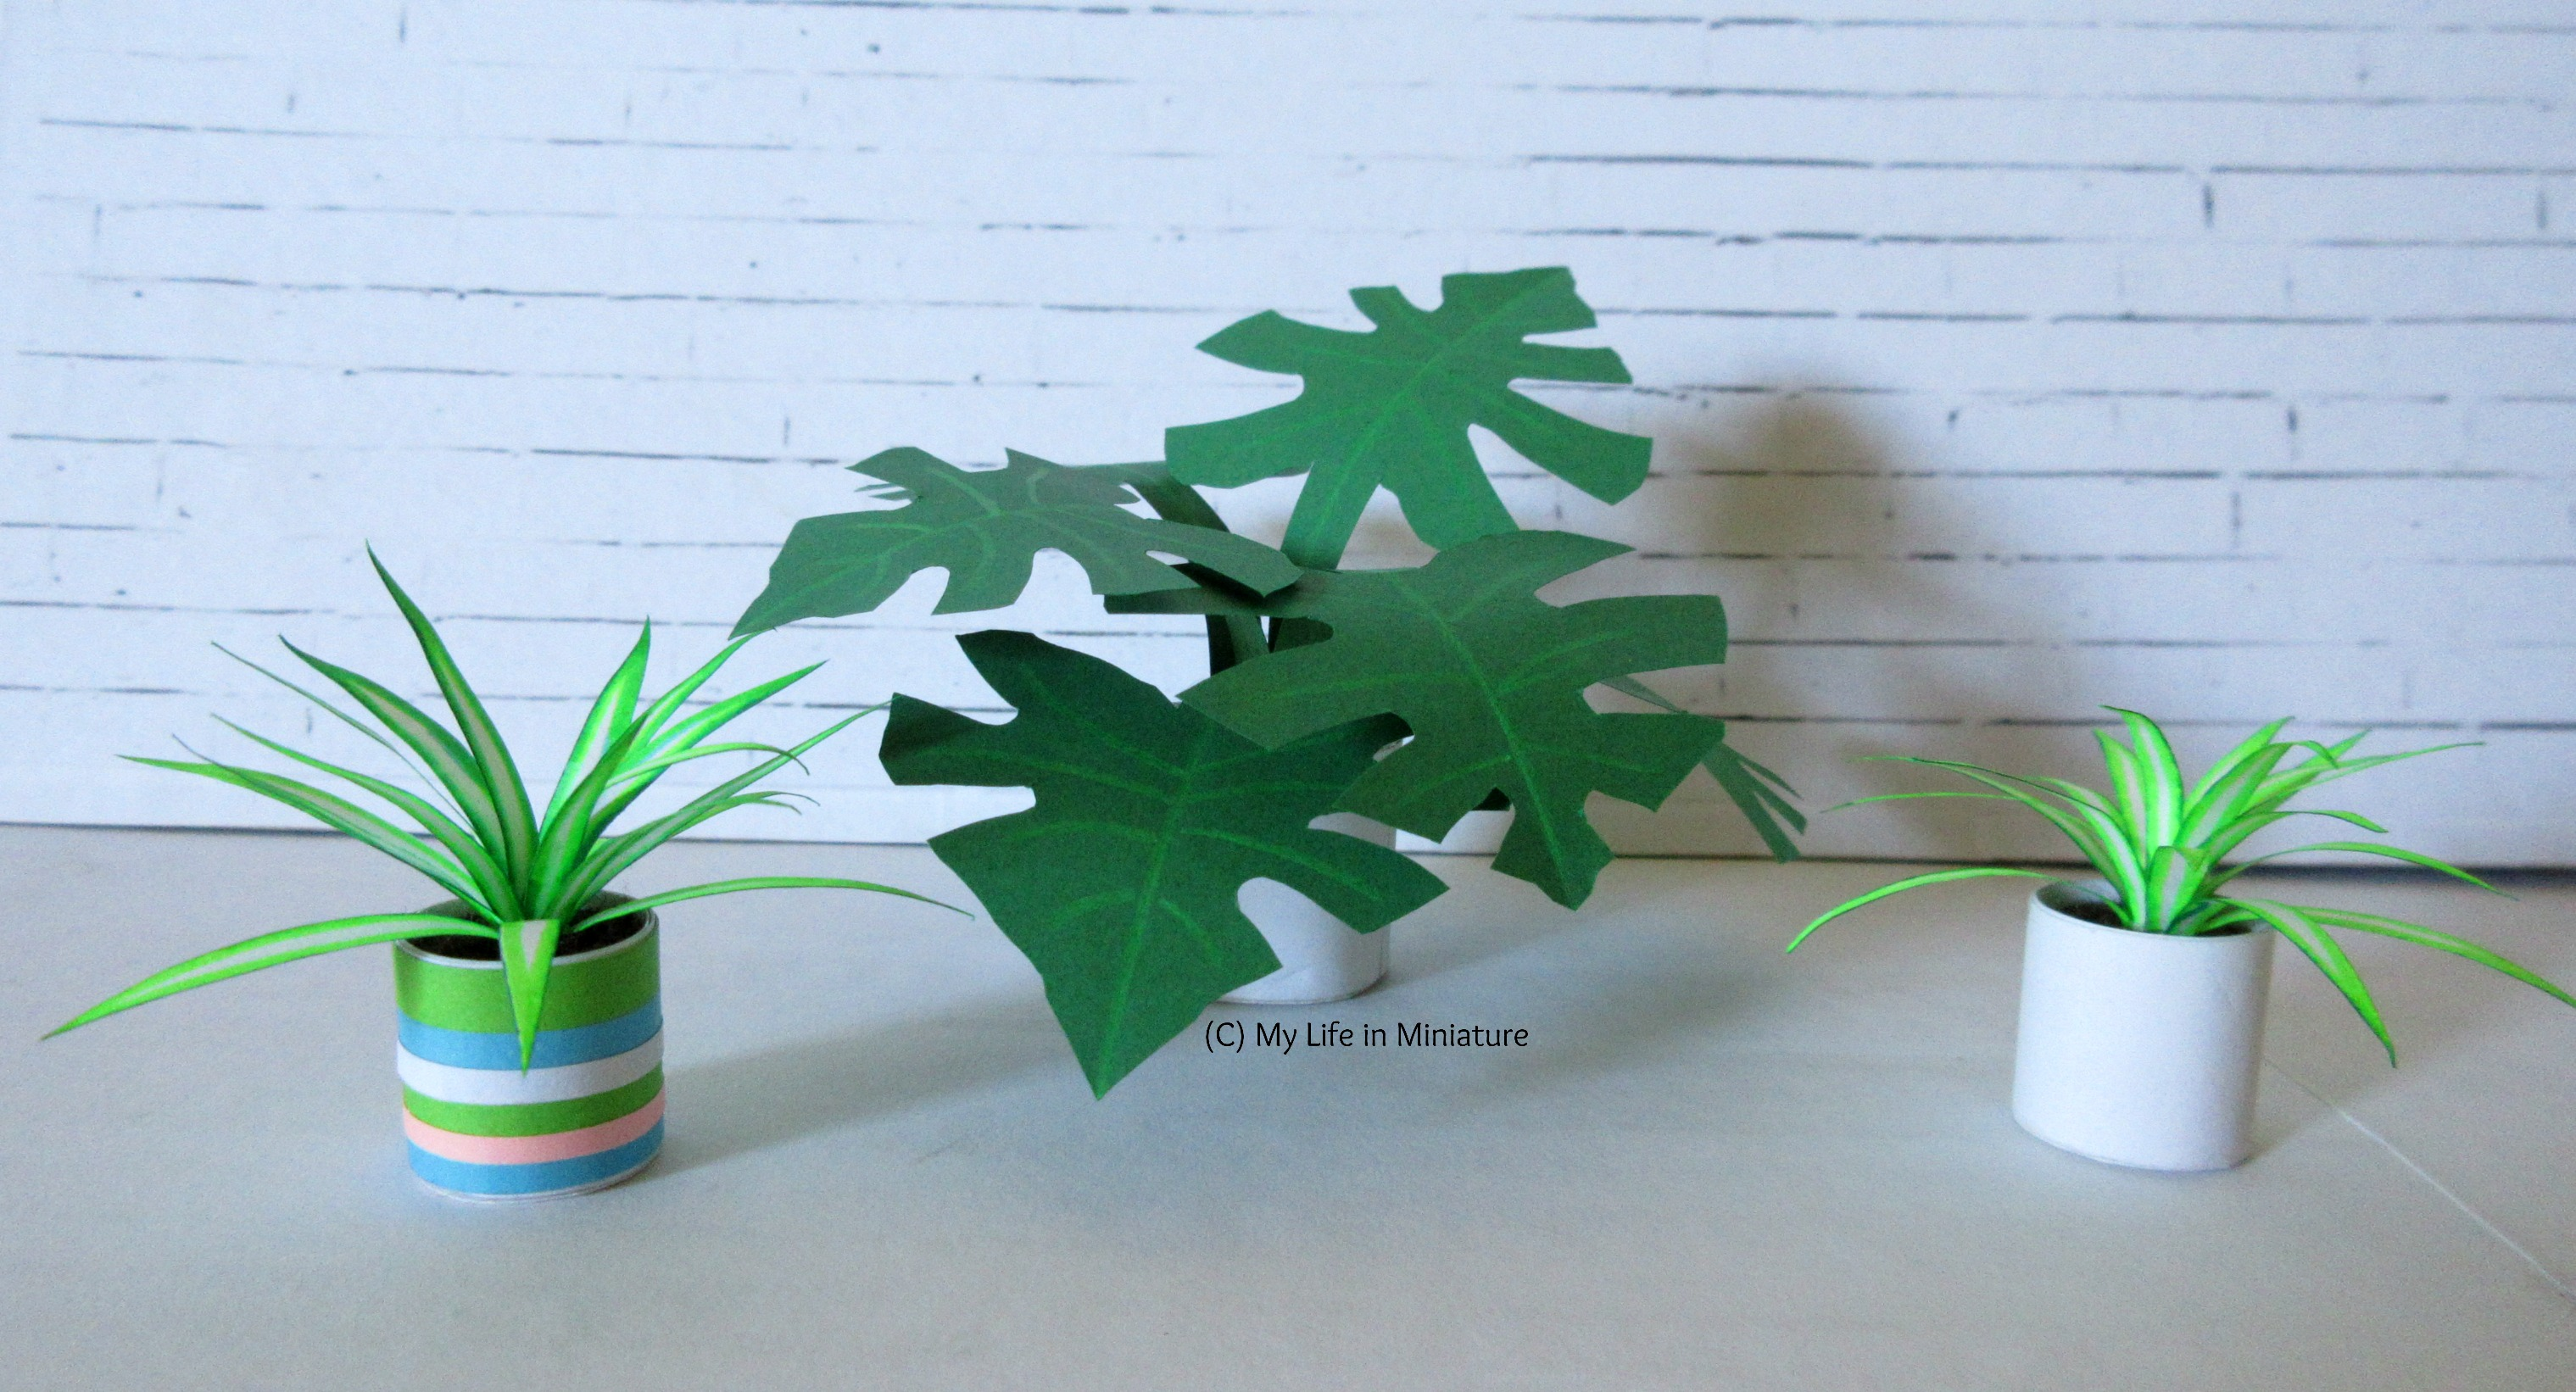 Three paper houseplants sit against a white brick background. In the centre is a monstera, and the other two are spiderplants.